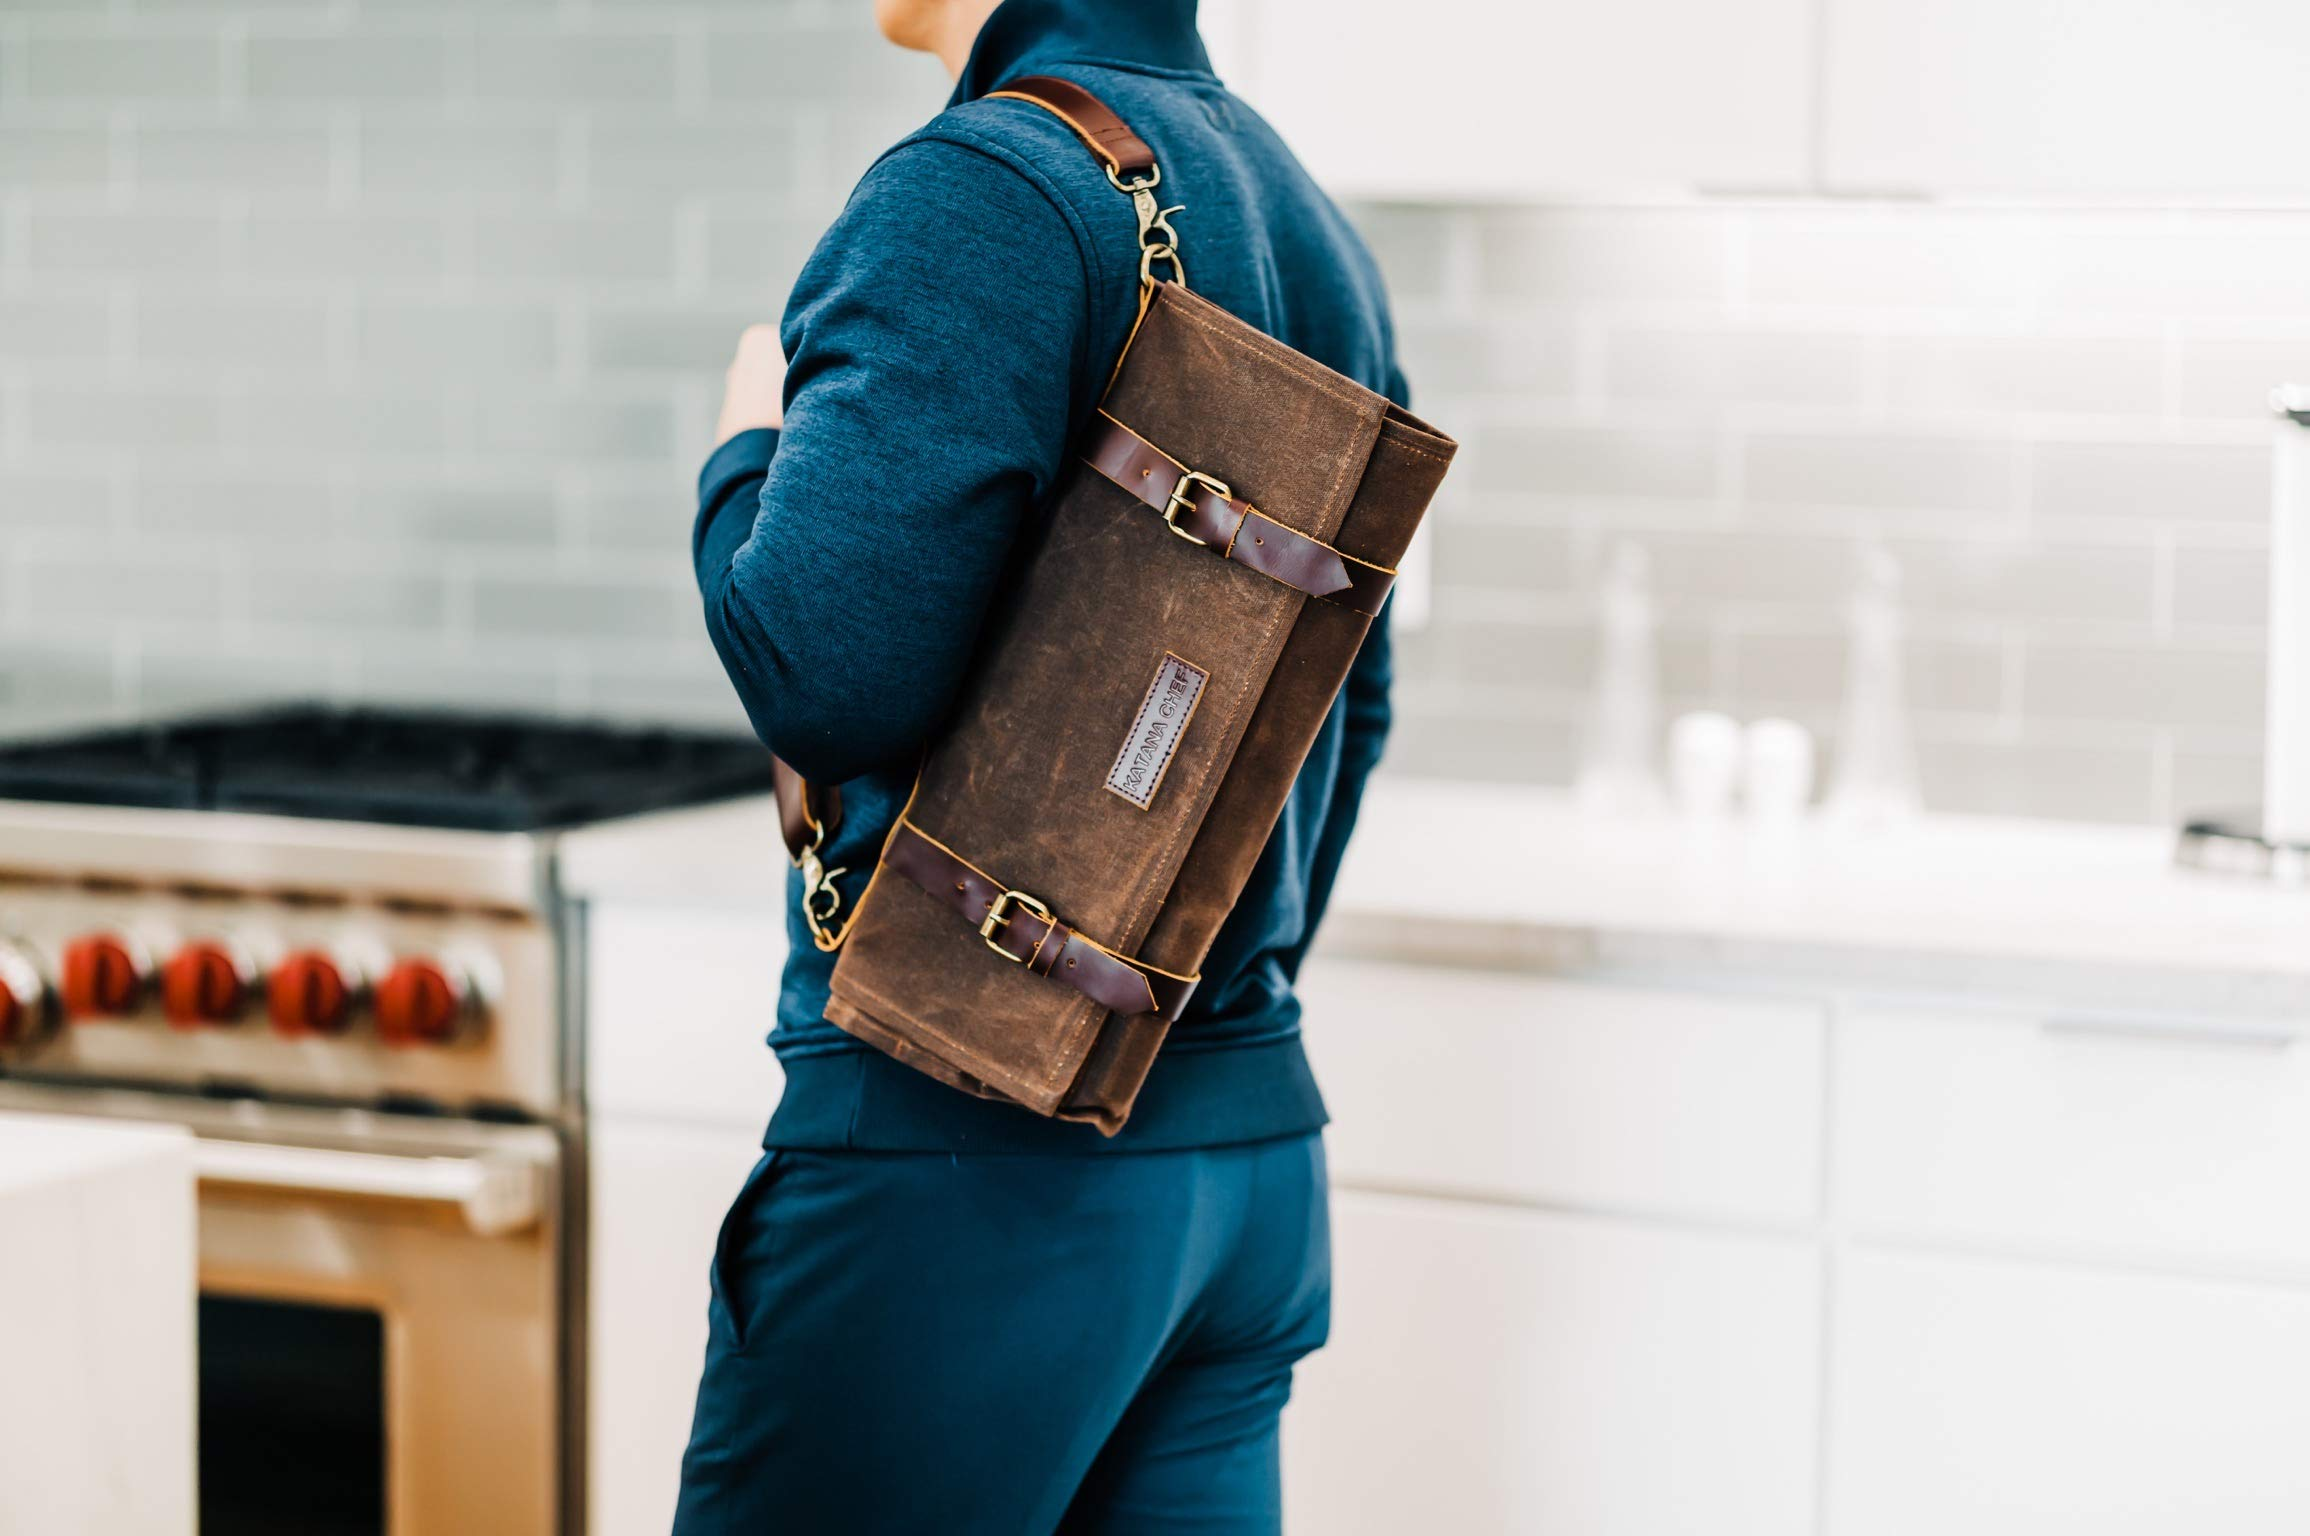 Chef's Knife Roll Bag Durable Waxed Canvas Carrier Stores 8 Knives PLUS Detachable Storage Unit for Culinary Accessories | Portable Chef Knife Case with Leather Shoulder Strap | Knives not Included by Katana Chef (Image #7)